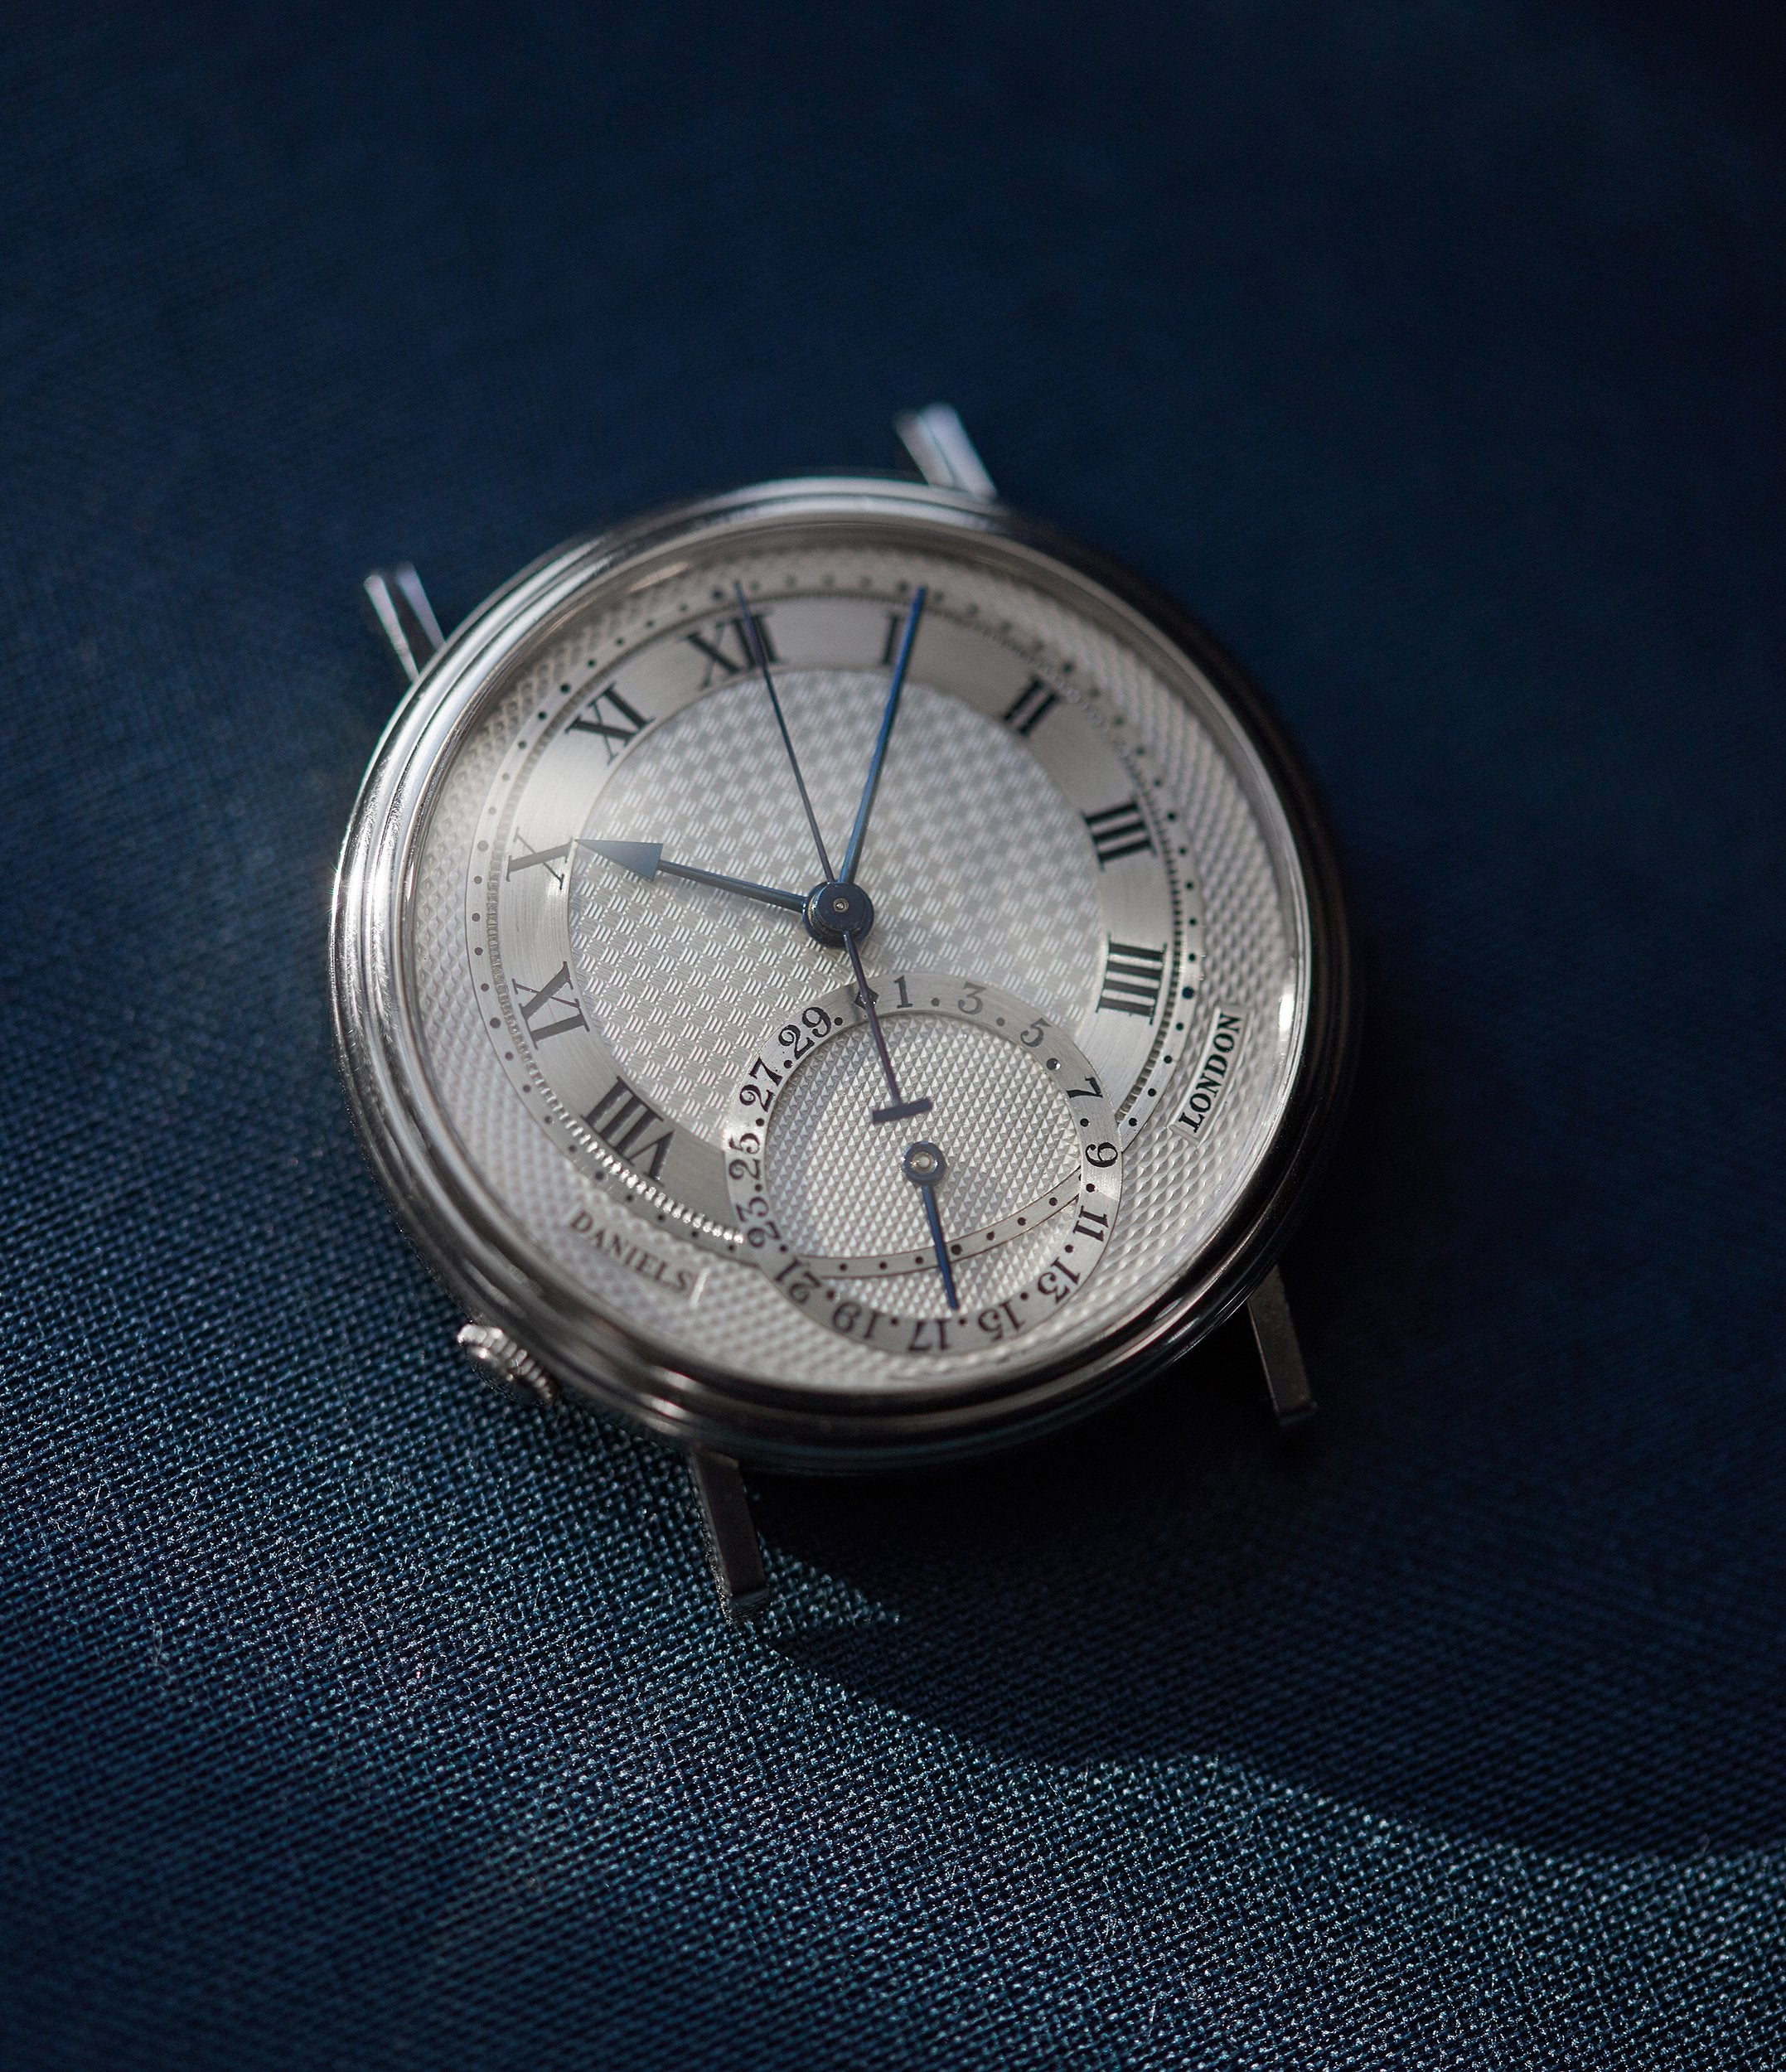 Daniels Millennium in white gold made by Roger W. Smith for A Collected Man London